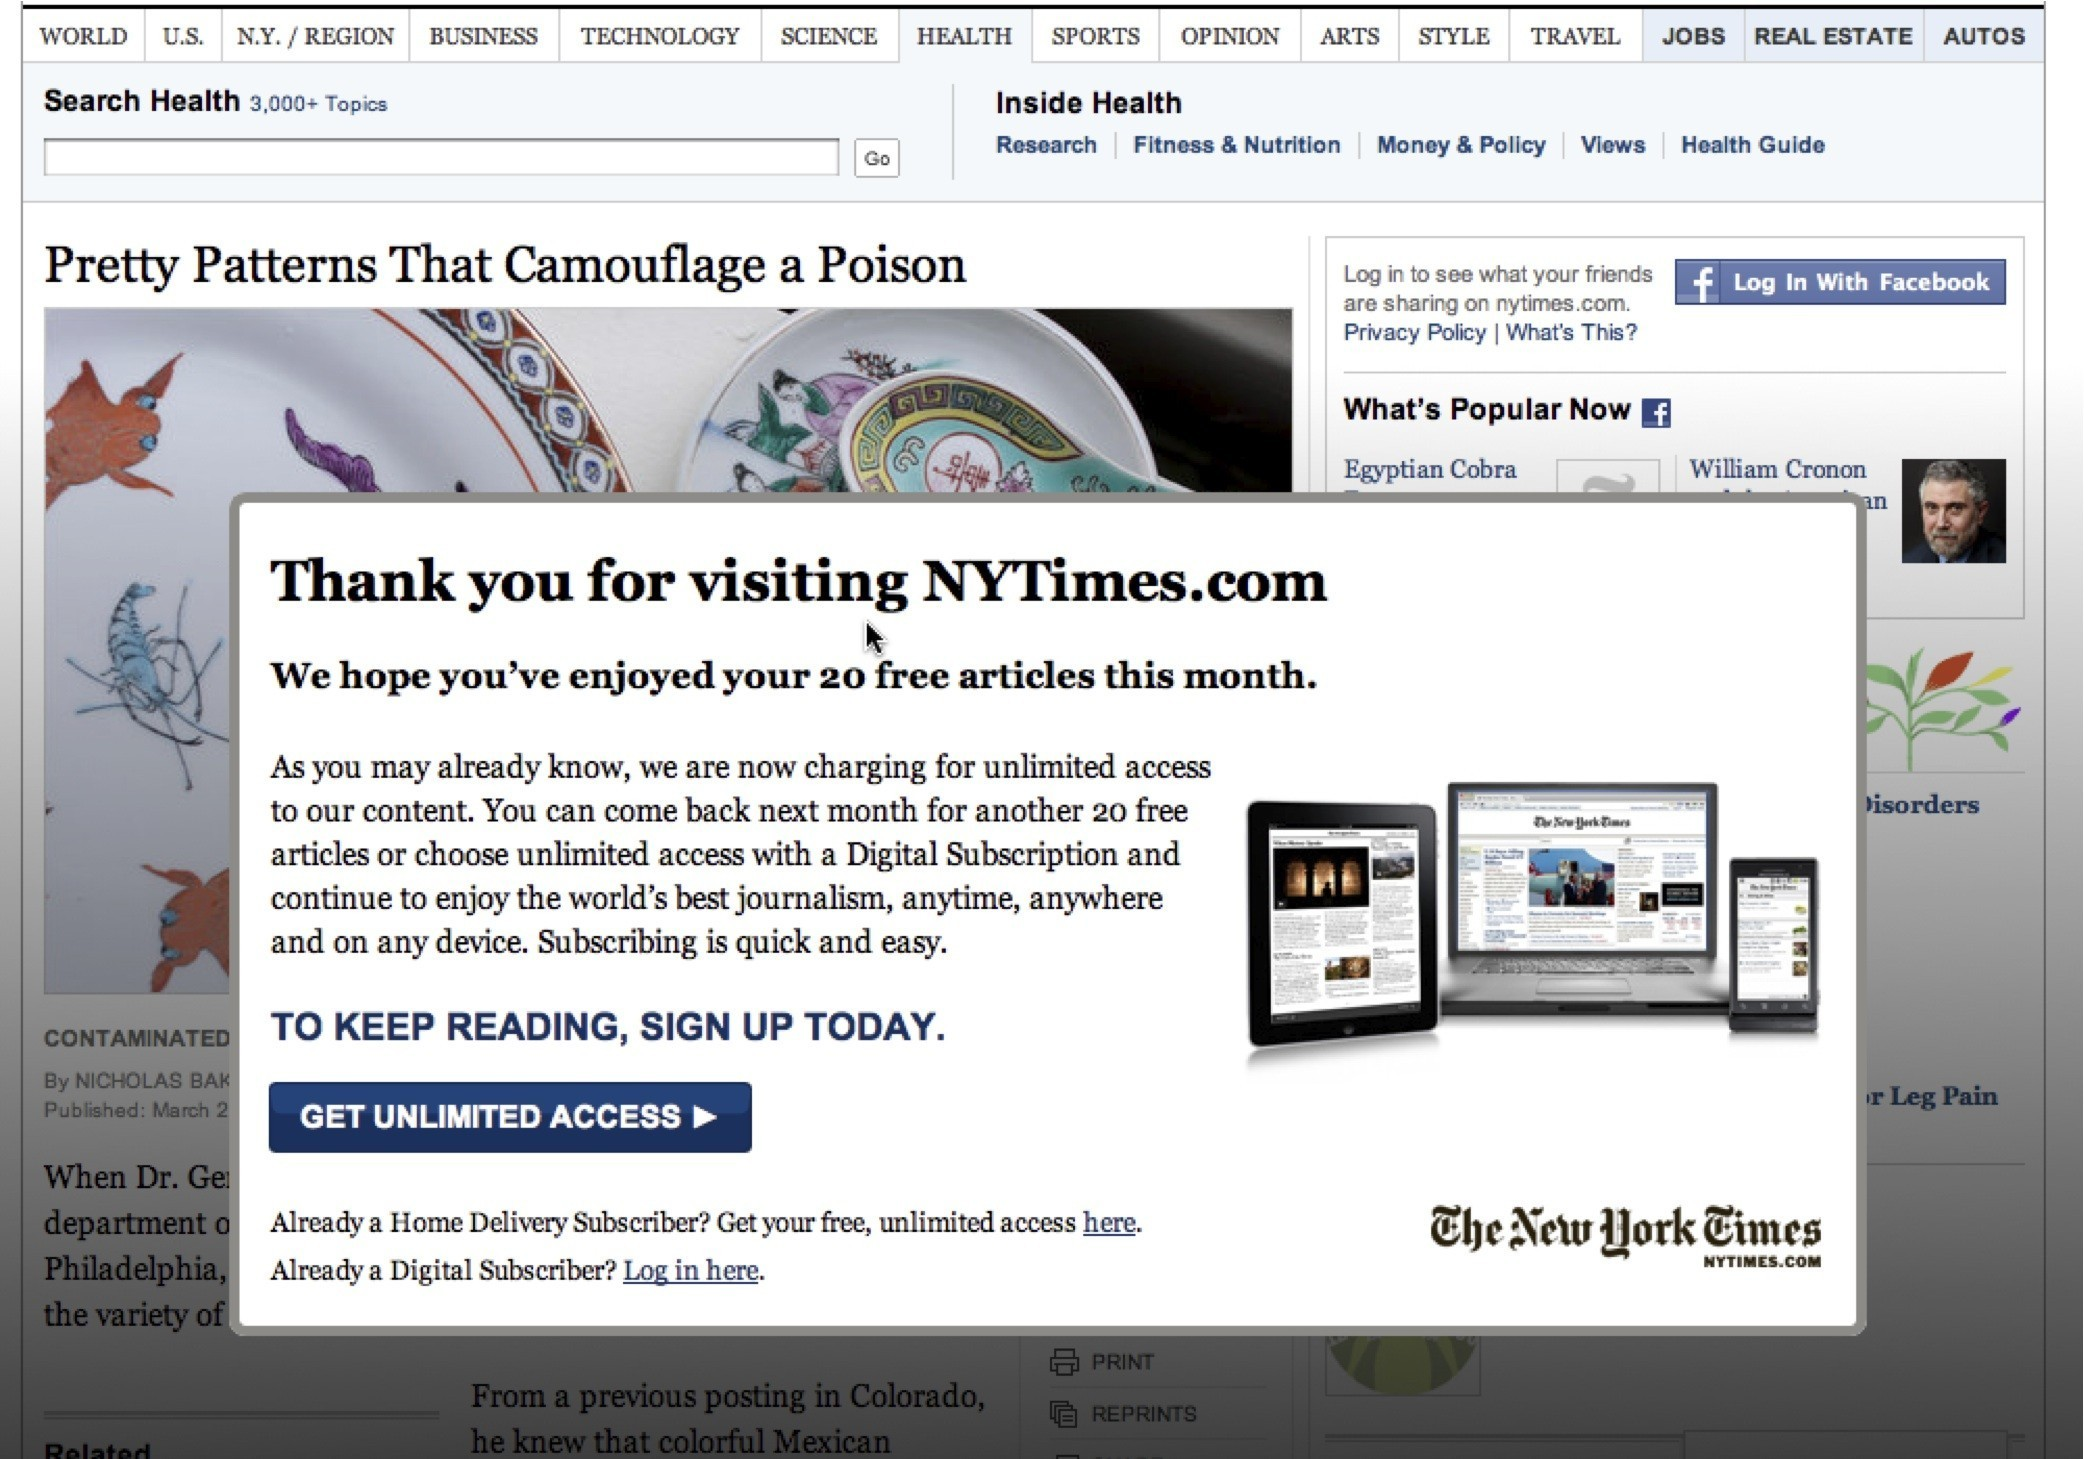 Ny Times Subscription Advertising Woes Hit Ny Times As Digital Subscriptions Grow